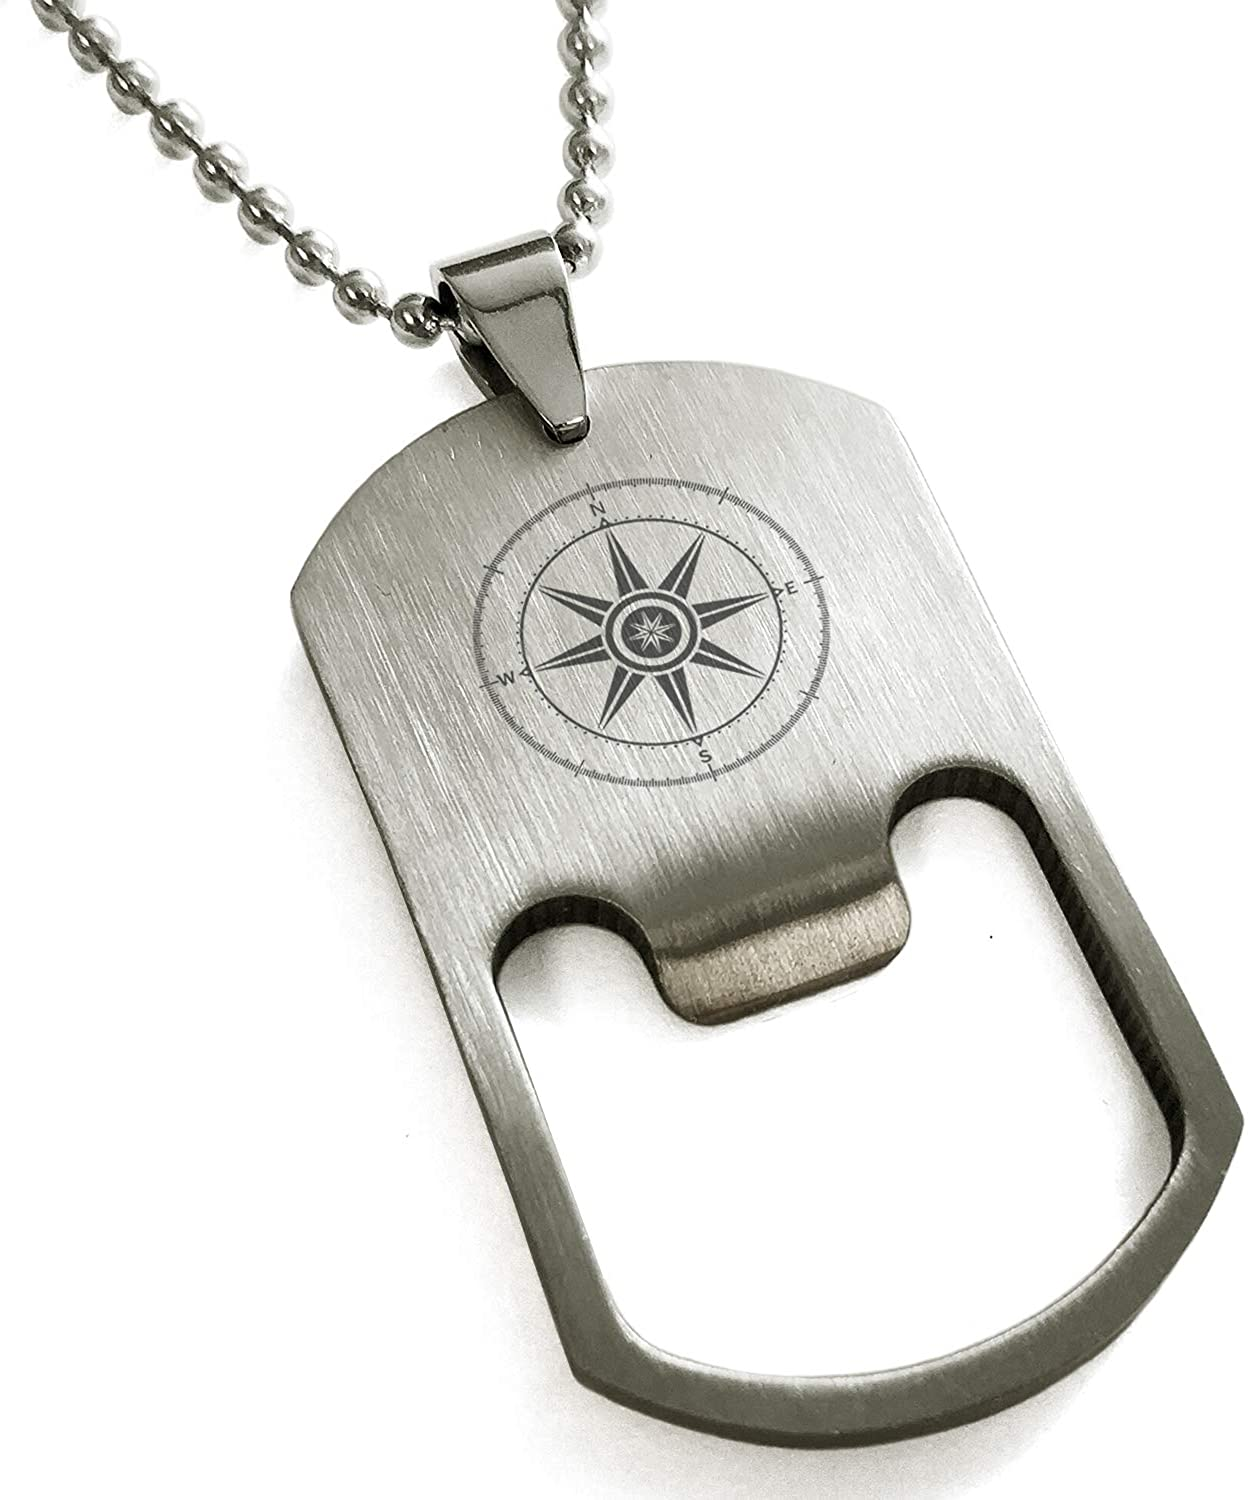 Tioneer Stainless Steel Nautical Wind Compass Bottle Opener Dog Tag Pendant Necklace